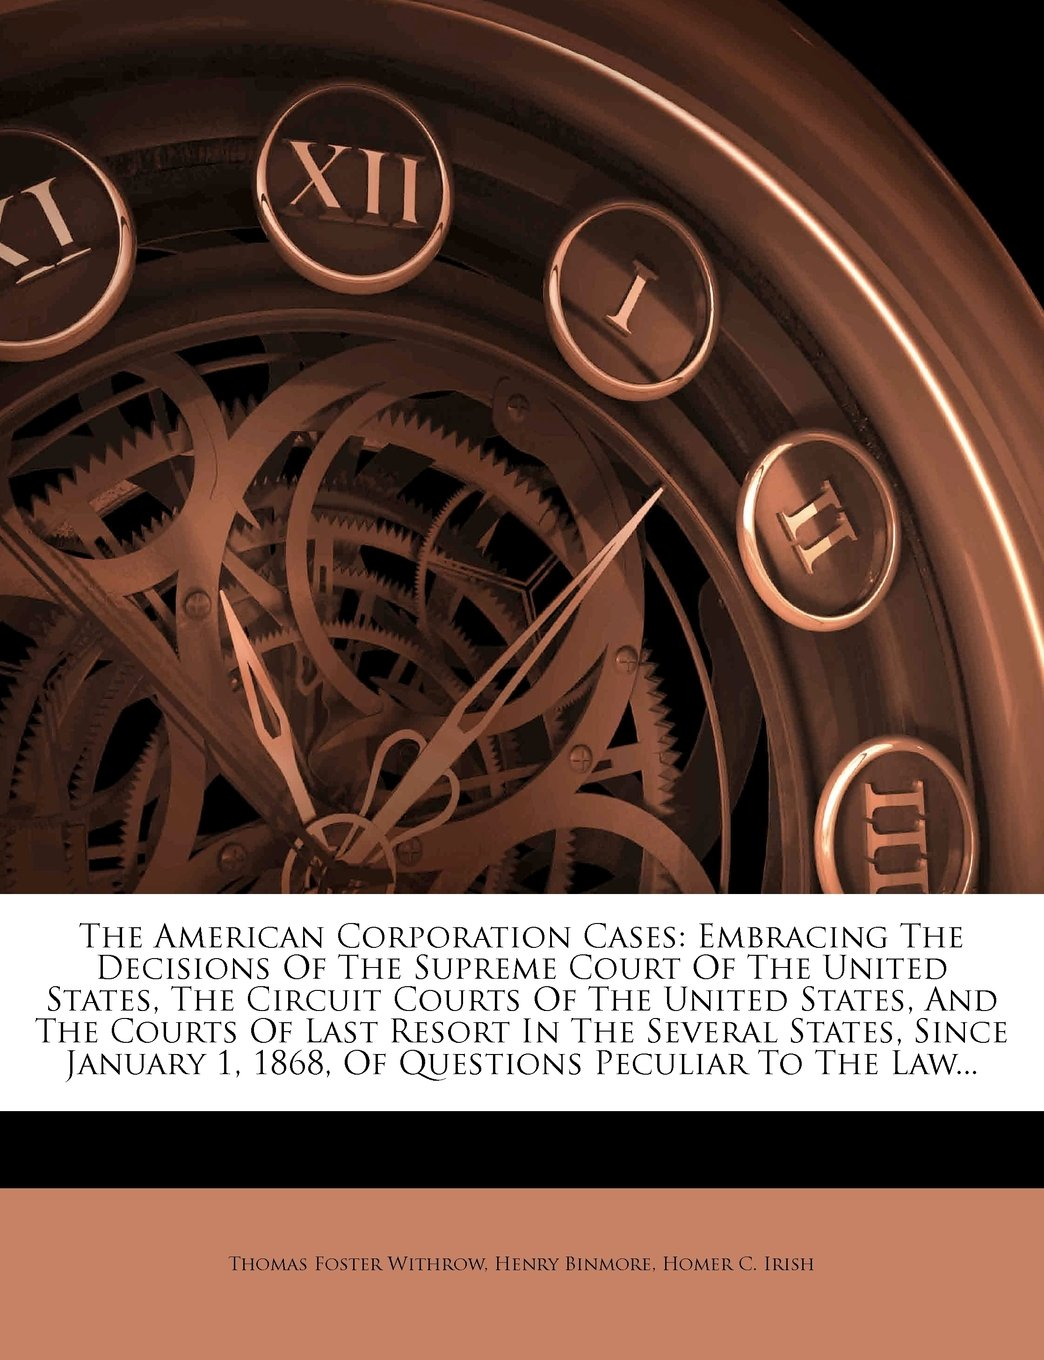 The American Corporation Cases: Embracing The Decisions Of The Supreme Court Of The United States, The Circuit Courts Of The United States, And The ... 1, 1868, Of Questions Peculiar To The Law... ebook